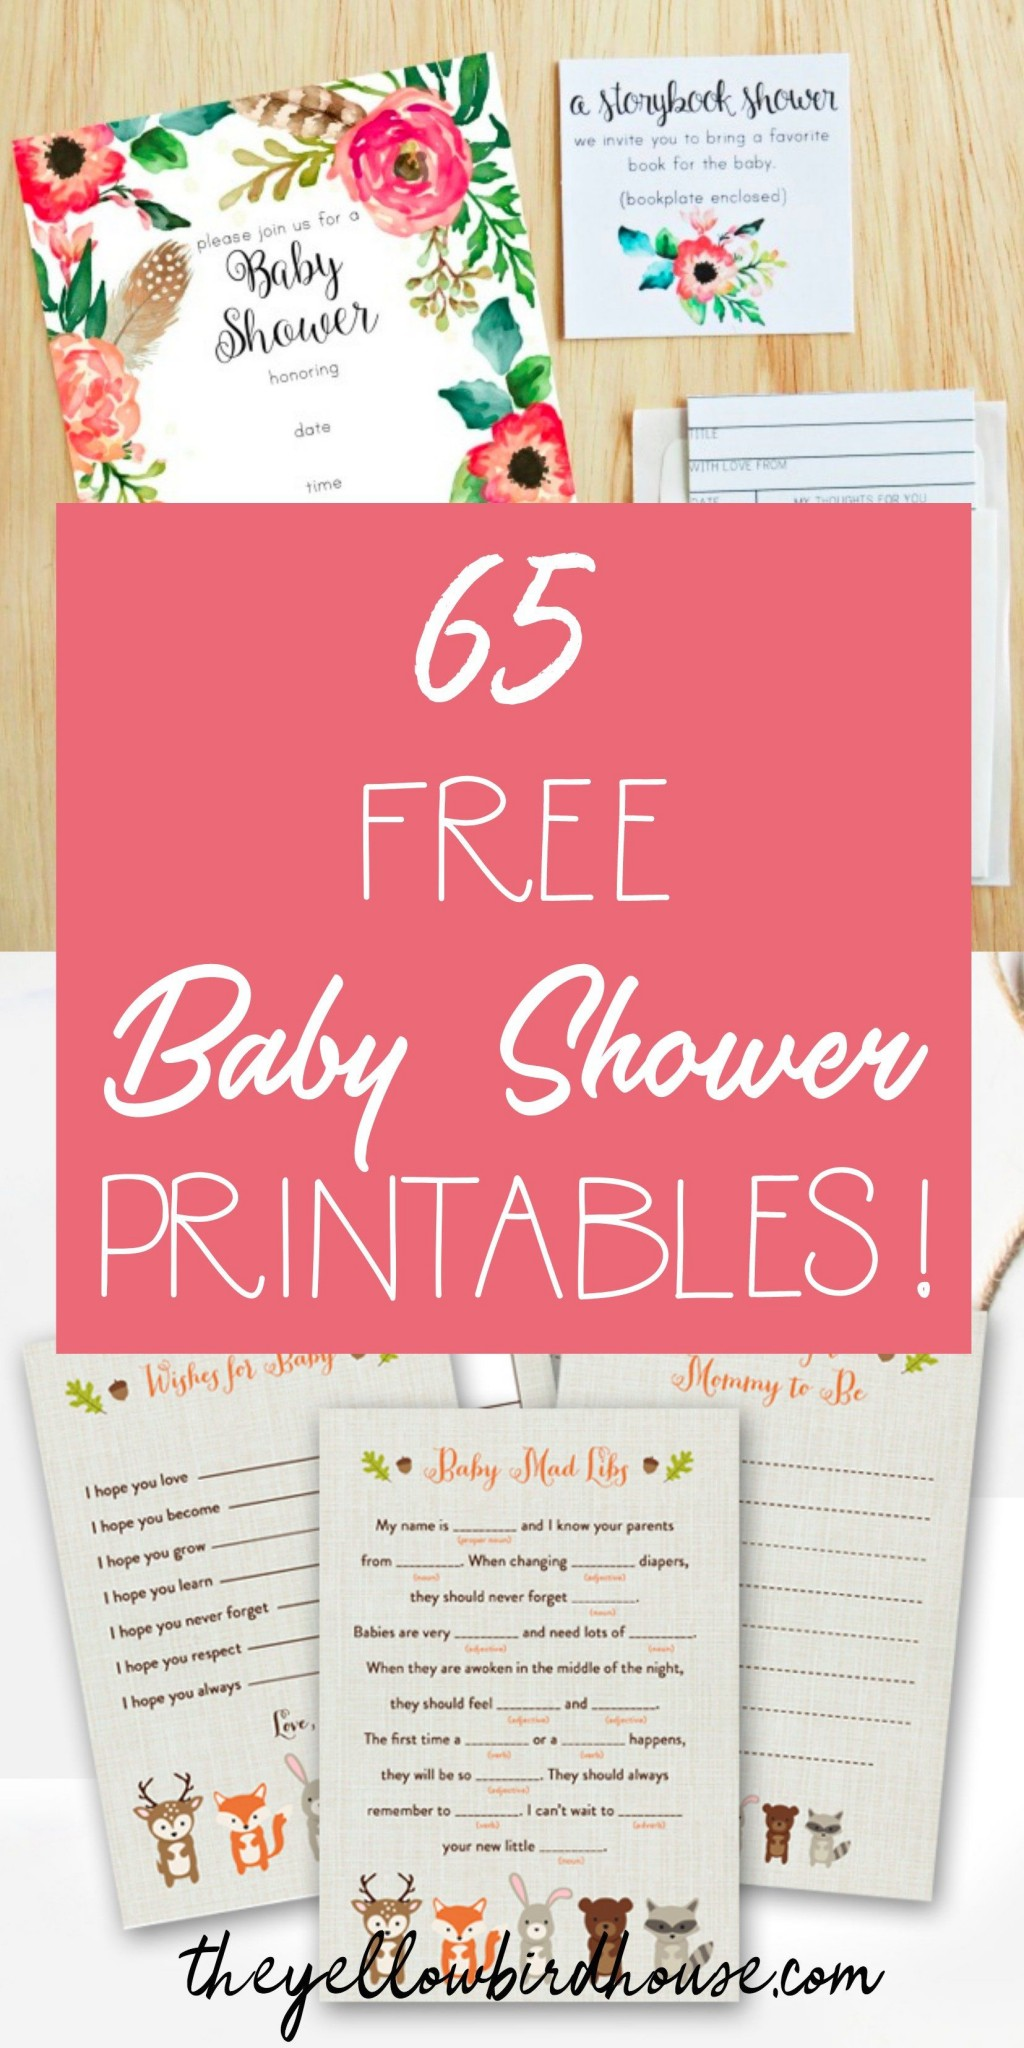 006 Unbelievable Baby Shower Printable Girl Inspiration  Sheet Cake Cute For ALarge